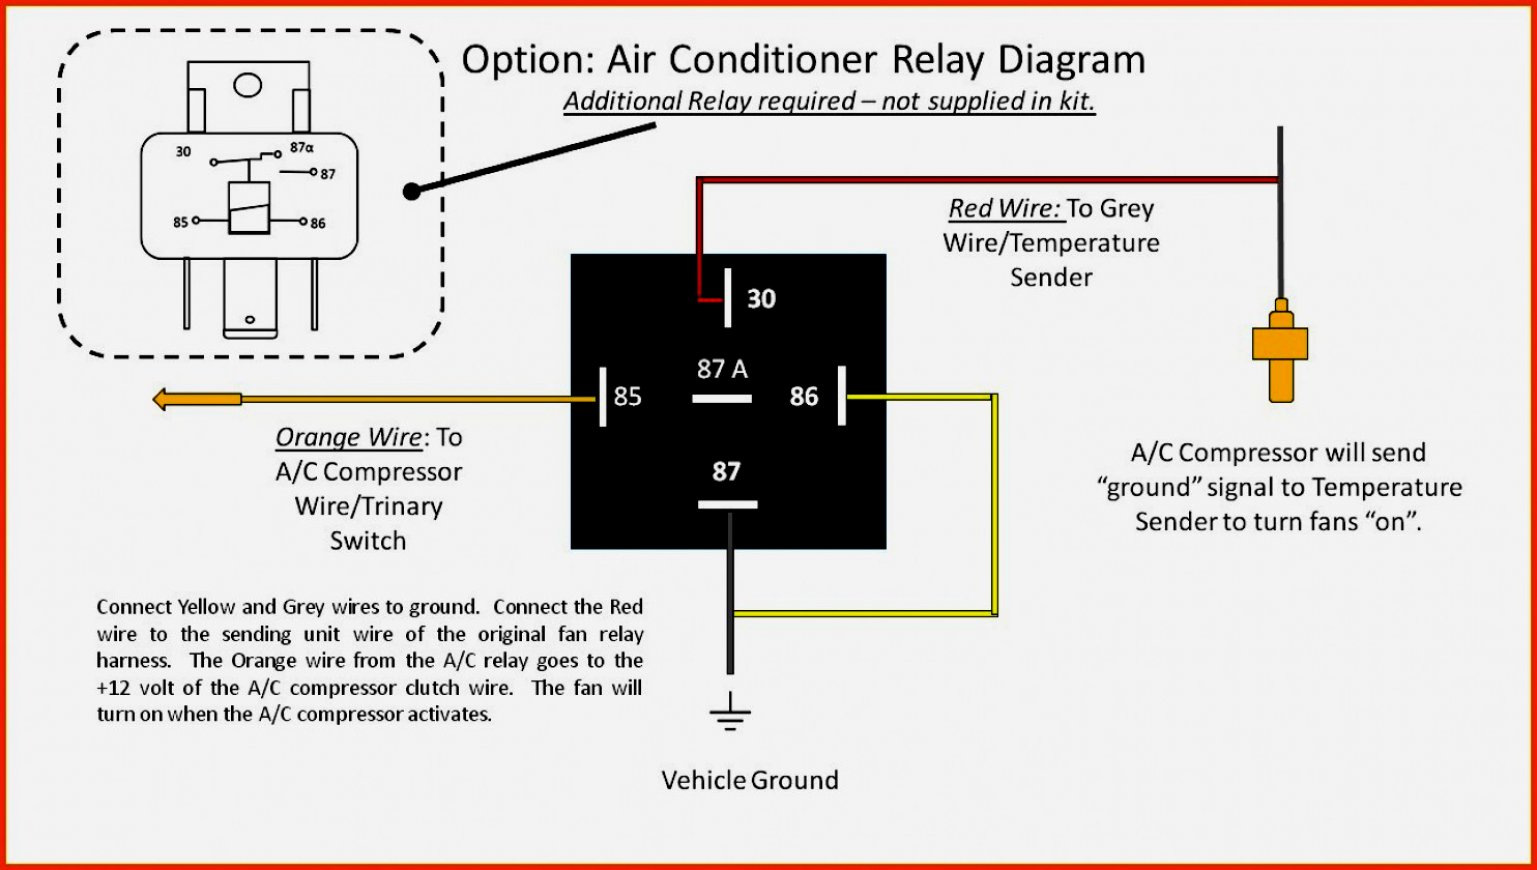 Spdt Relay Wiring Diagram Multiple - Auto Electrical Wiring Diagramledningsdiagrama.webredirect.org